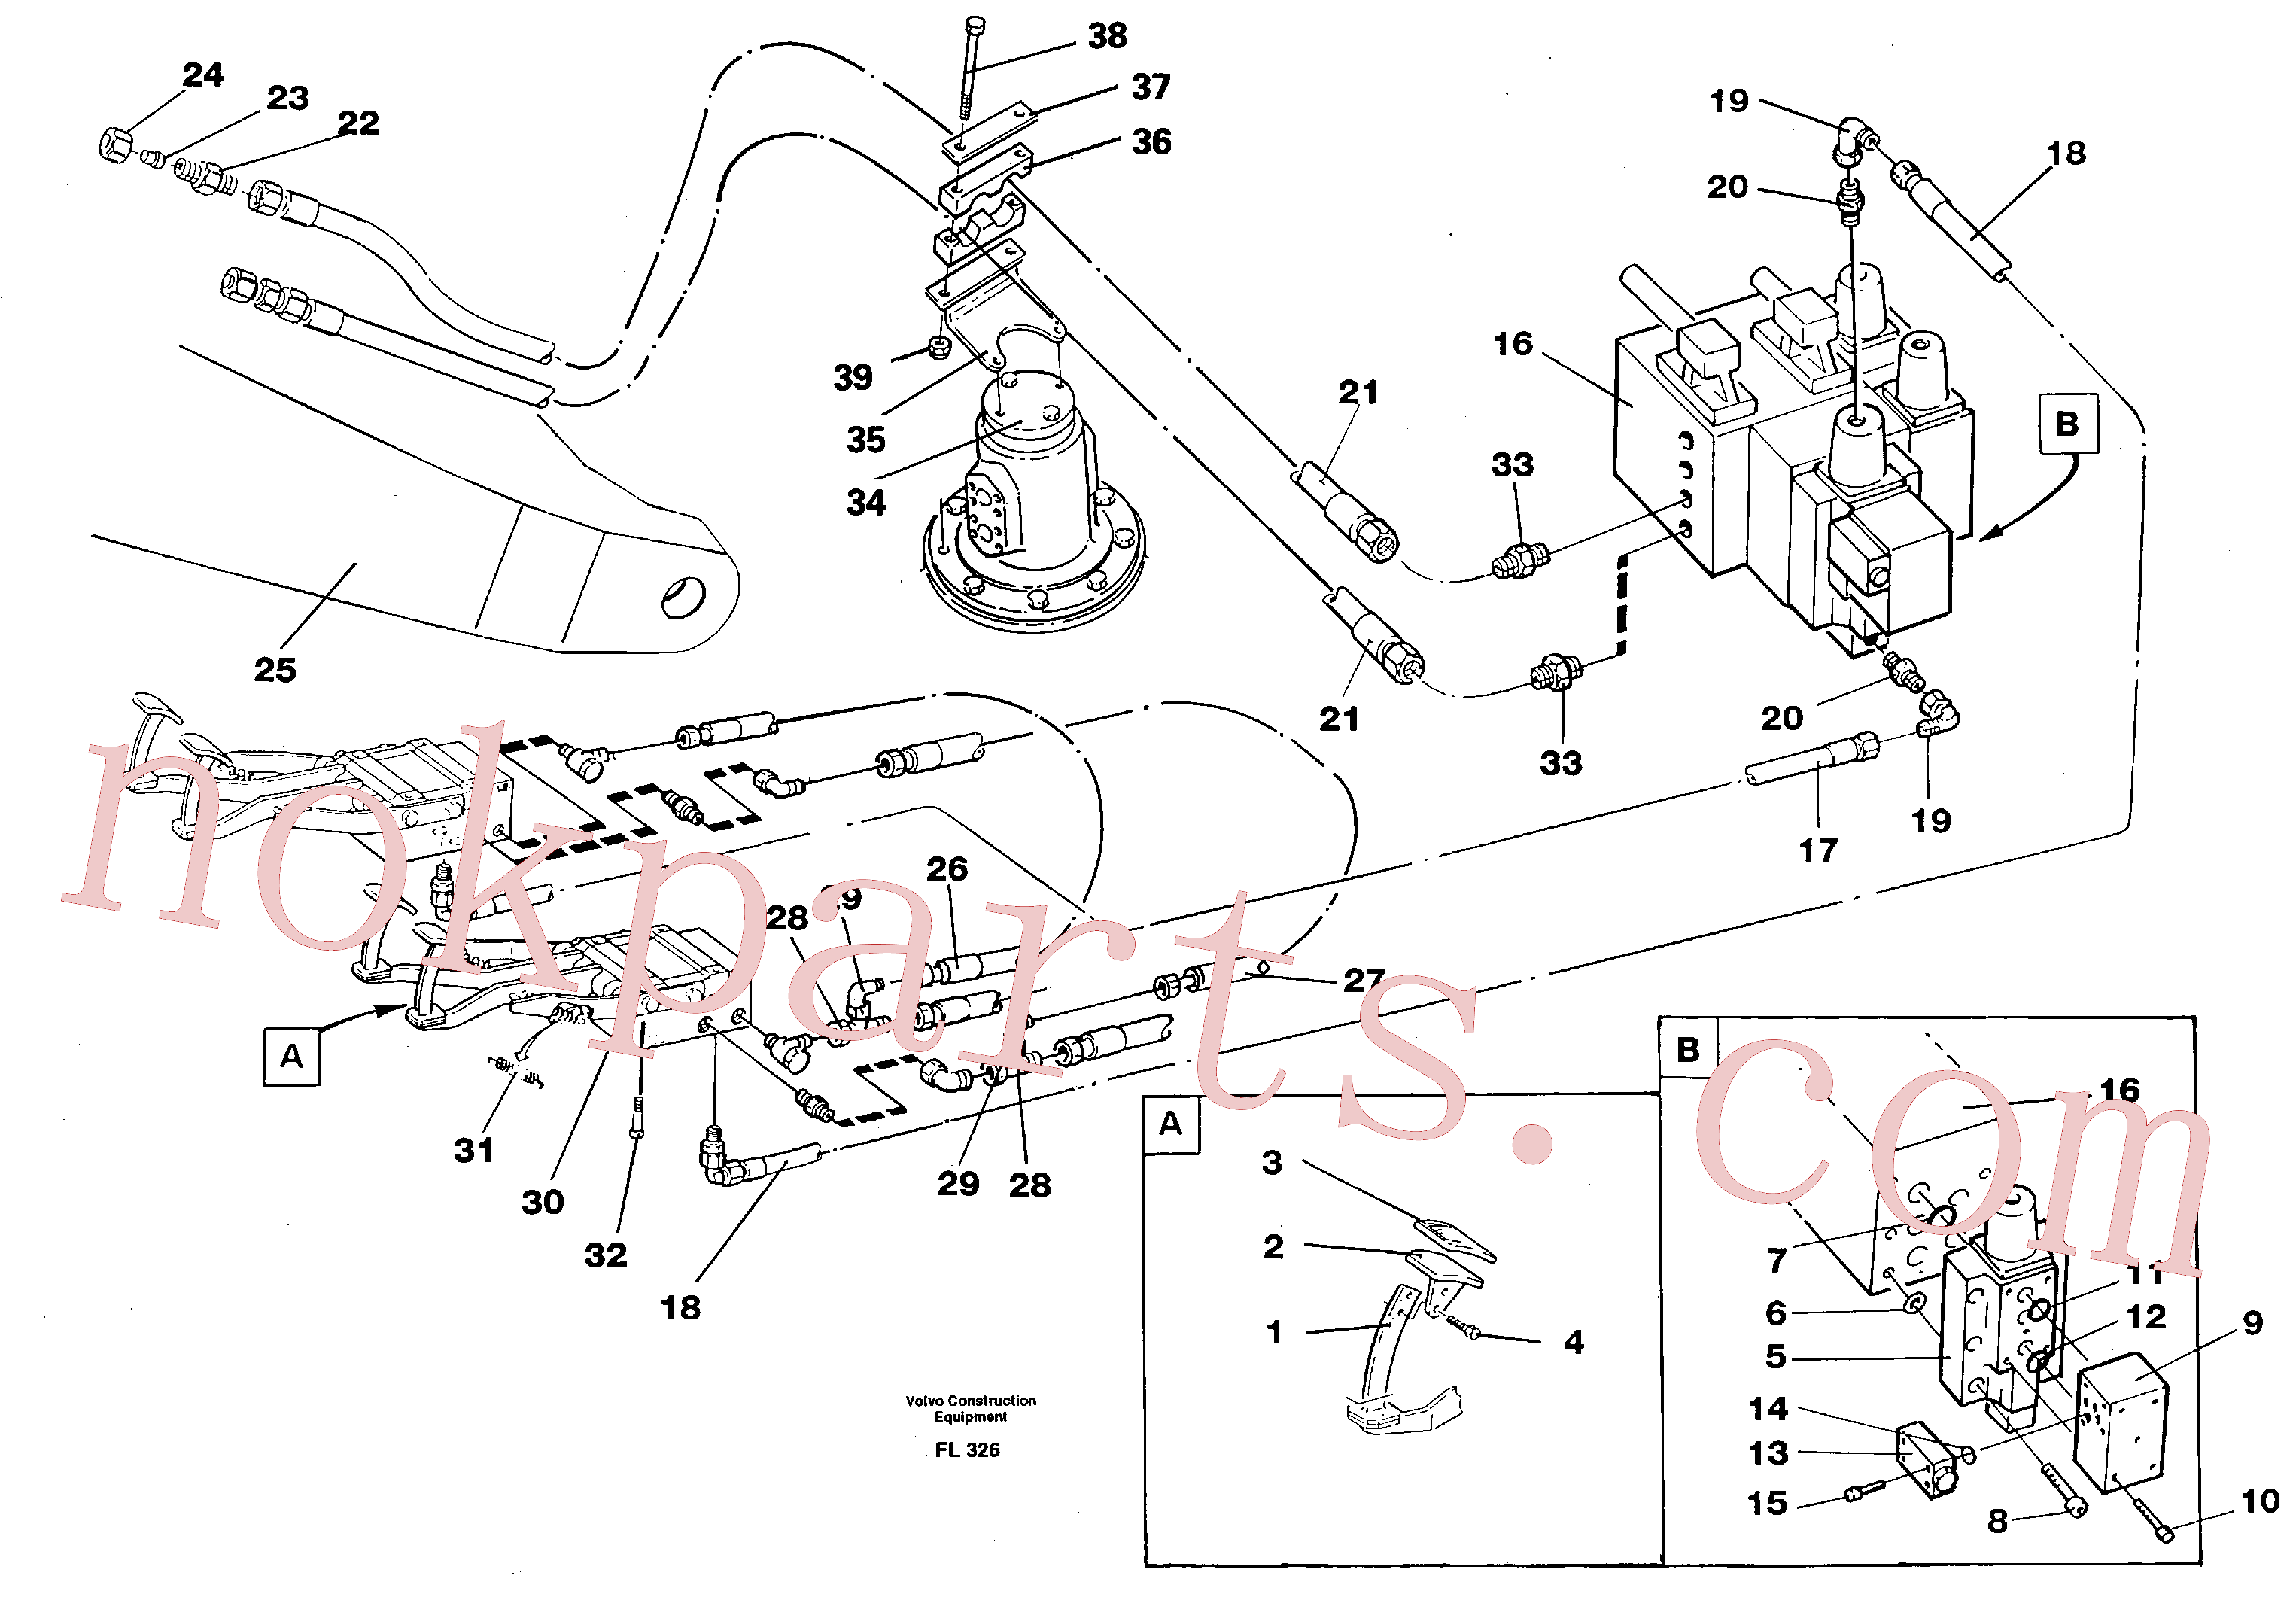 VOE14213032 for Volvo Slope bucket/rotating grab hydraulics in base machine(FL326 assembly)